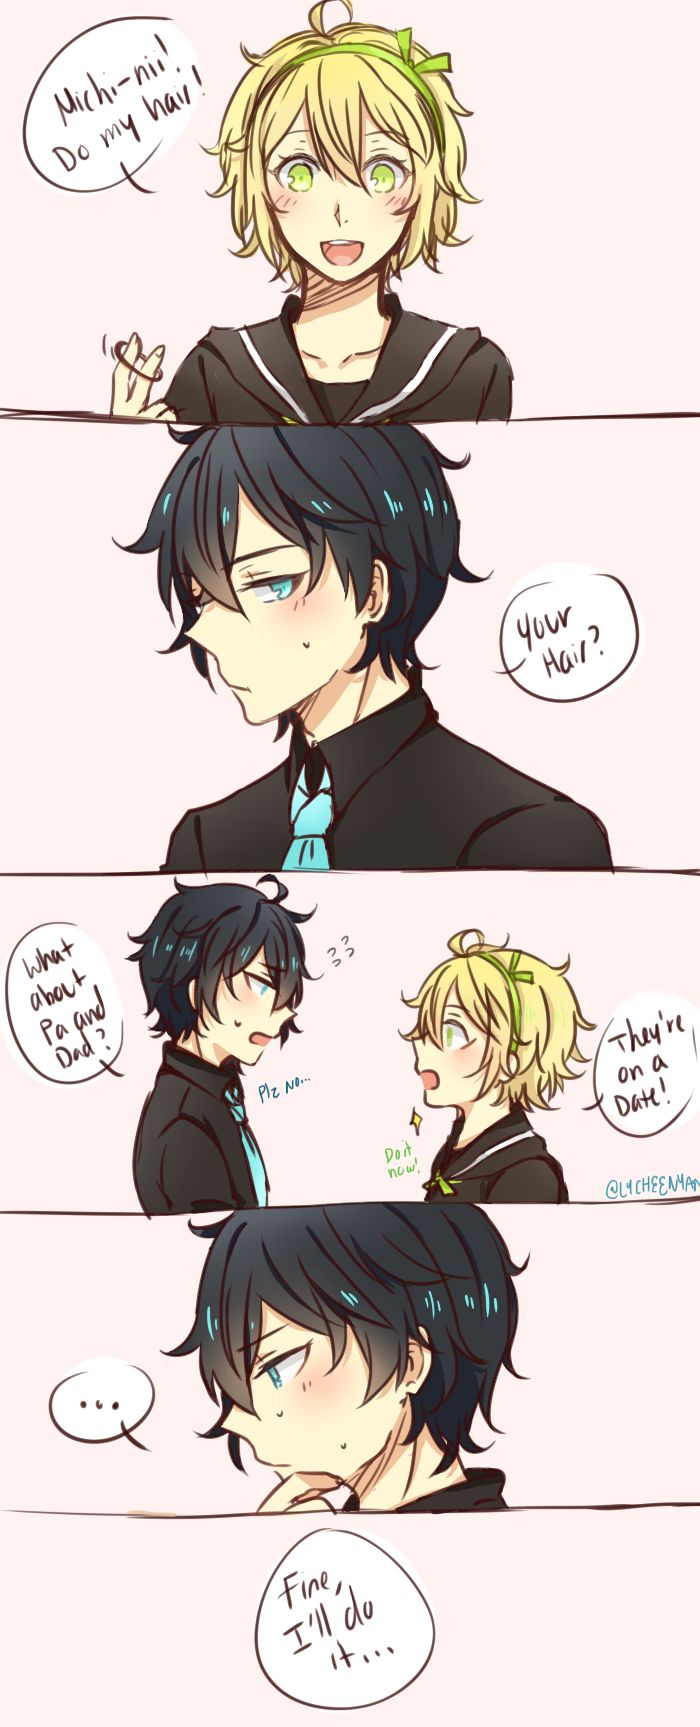 OMG THEY ARE THE SONS OF MIKA AND YUU SO CUTE!! But...how did they did them...?